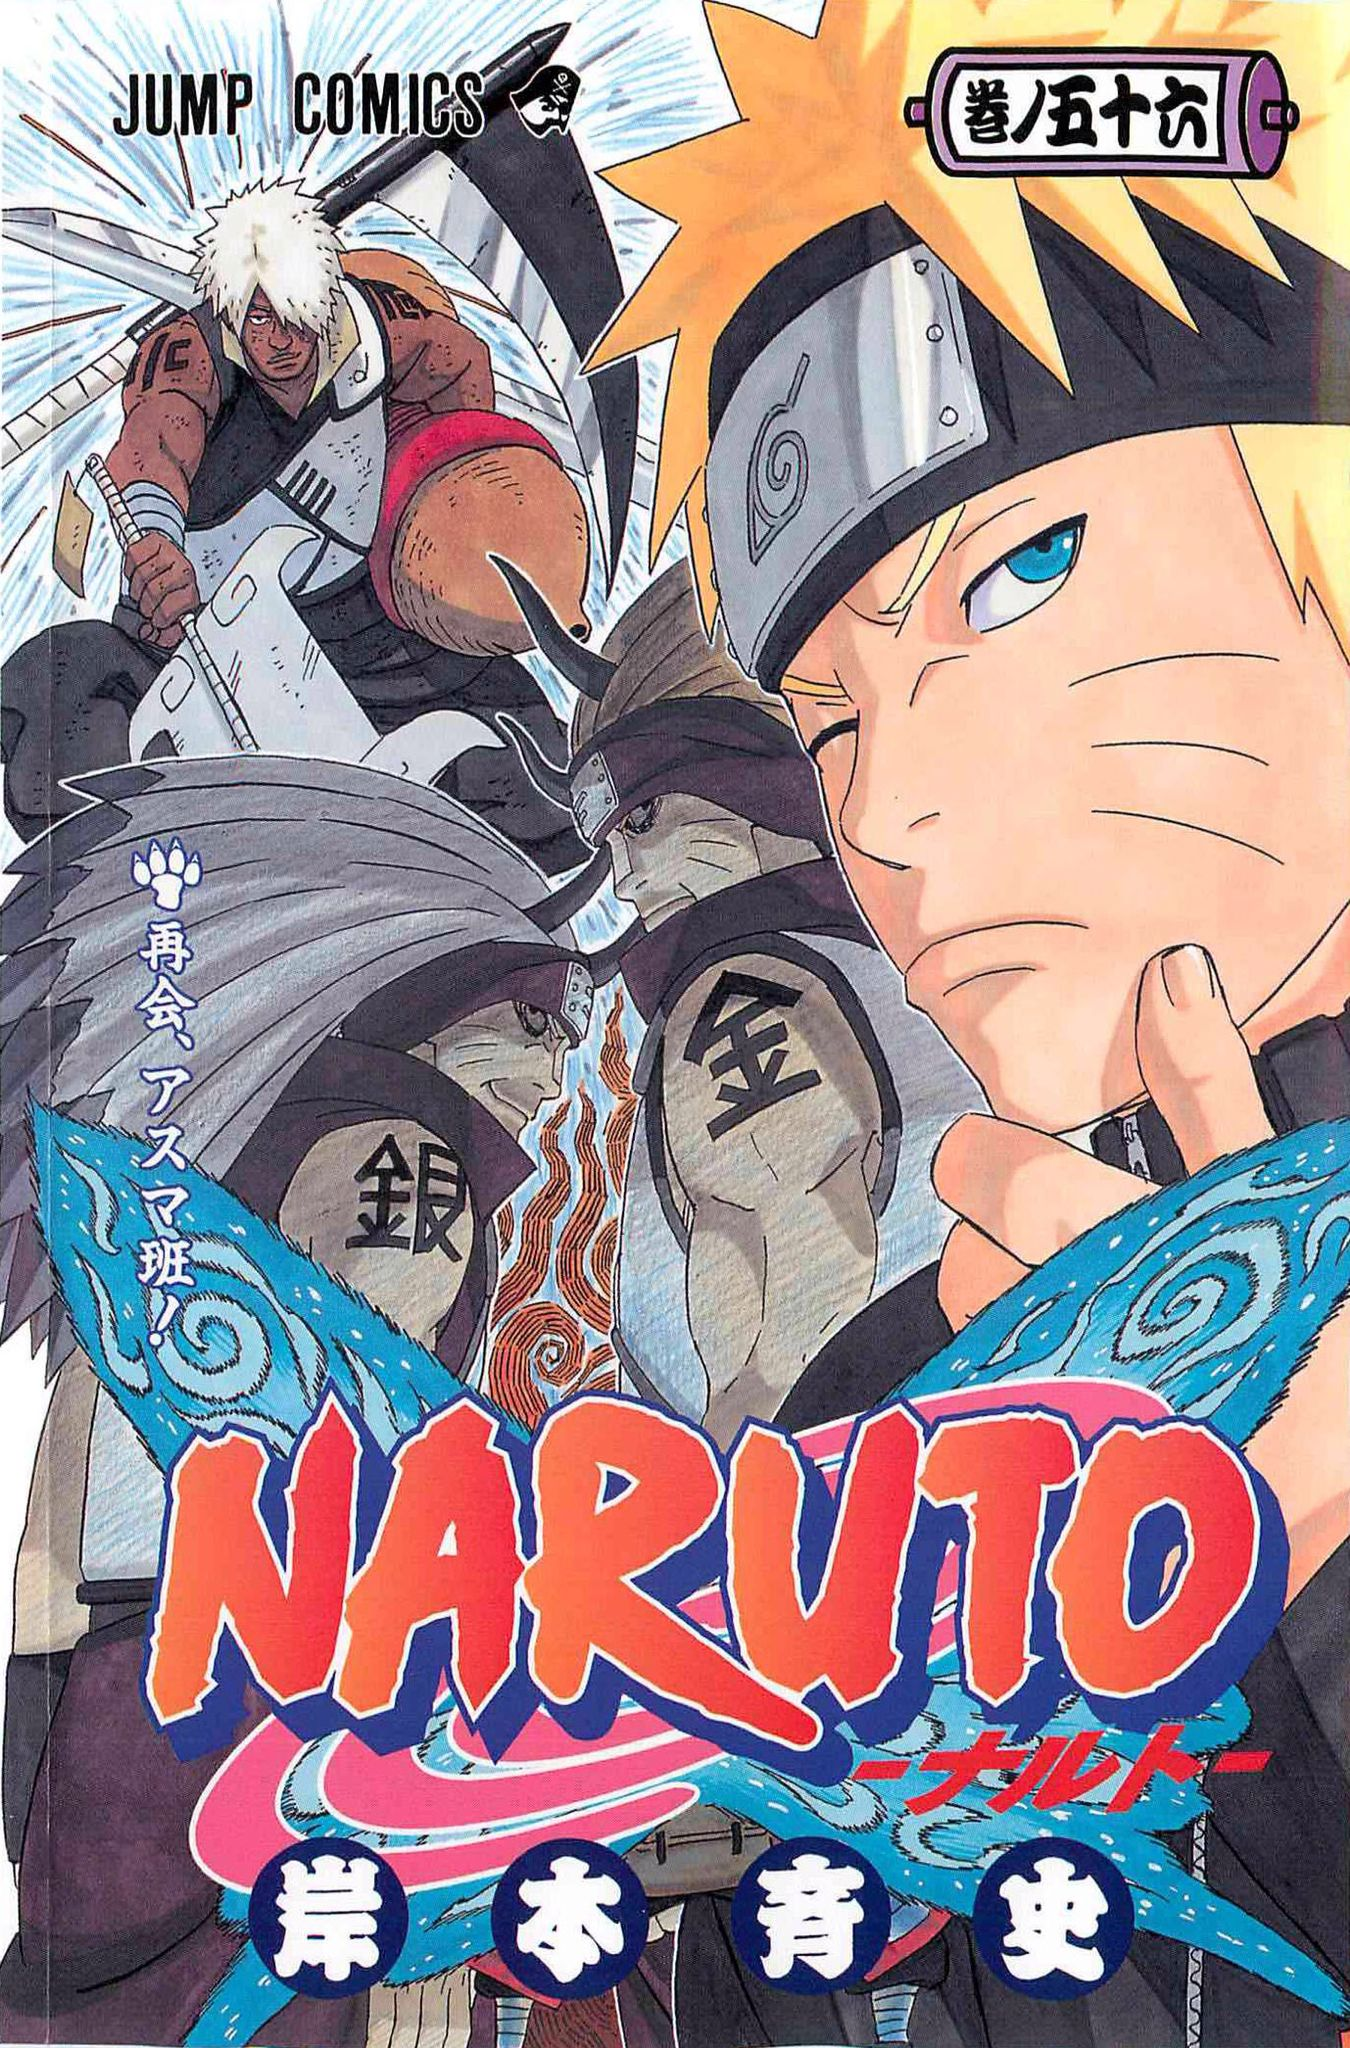 Pin by minato namikaze on Naruto ep Manga covers, Naruto